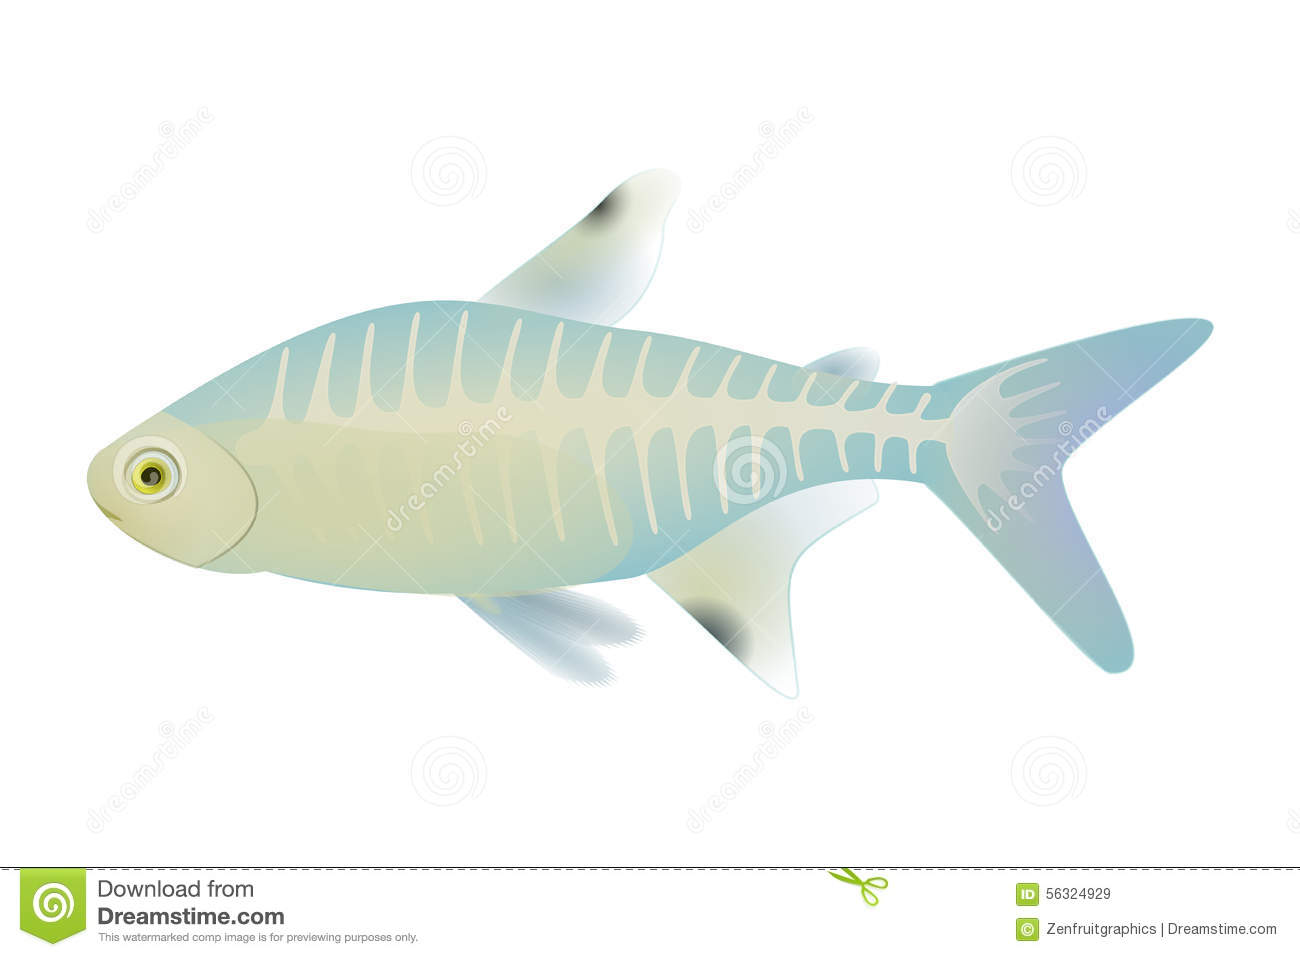 X ray fish vector antarctic animal x ray fish vector for X ray fish